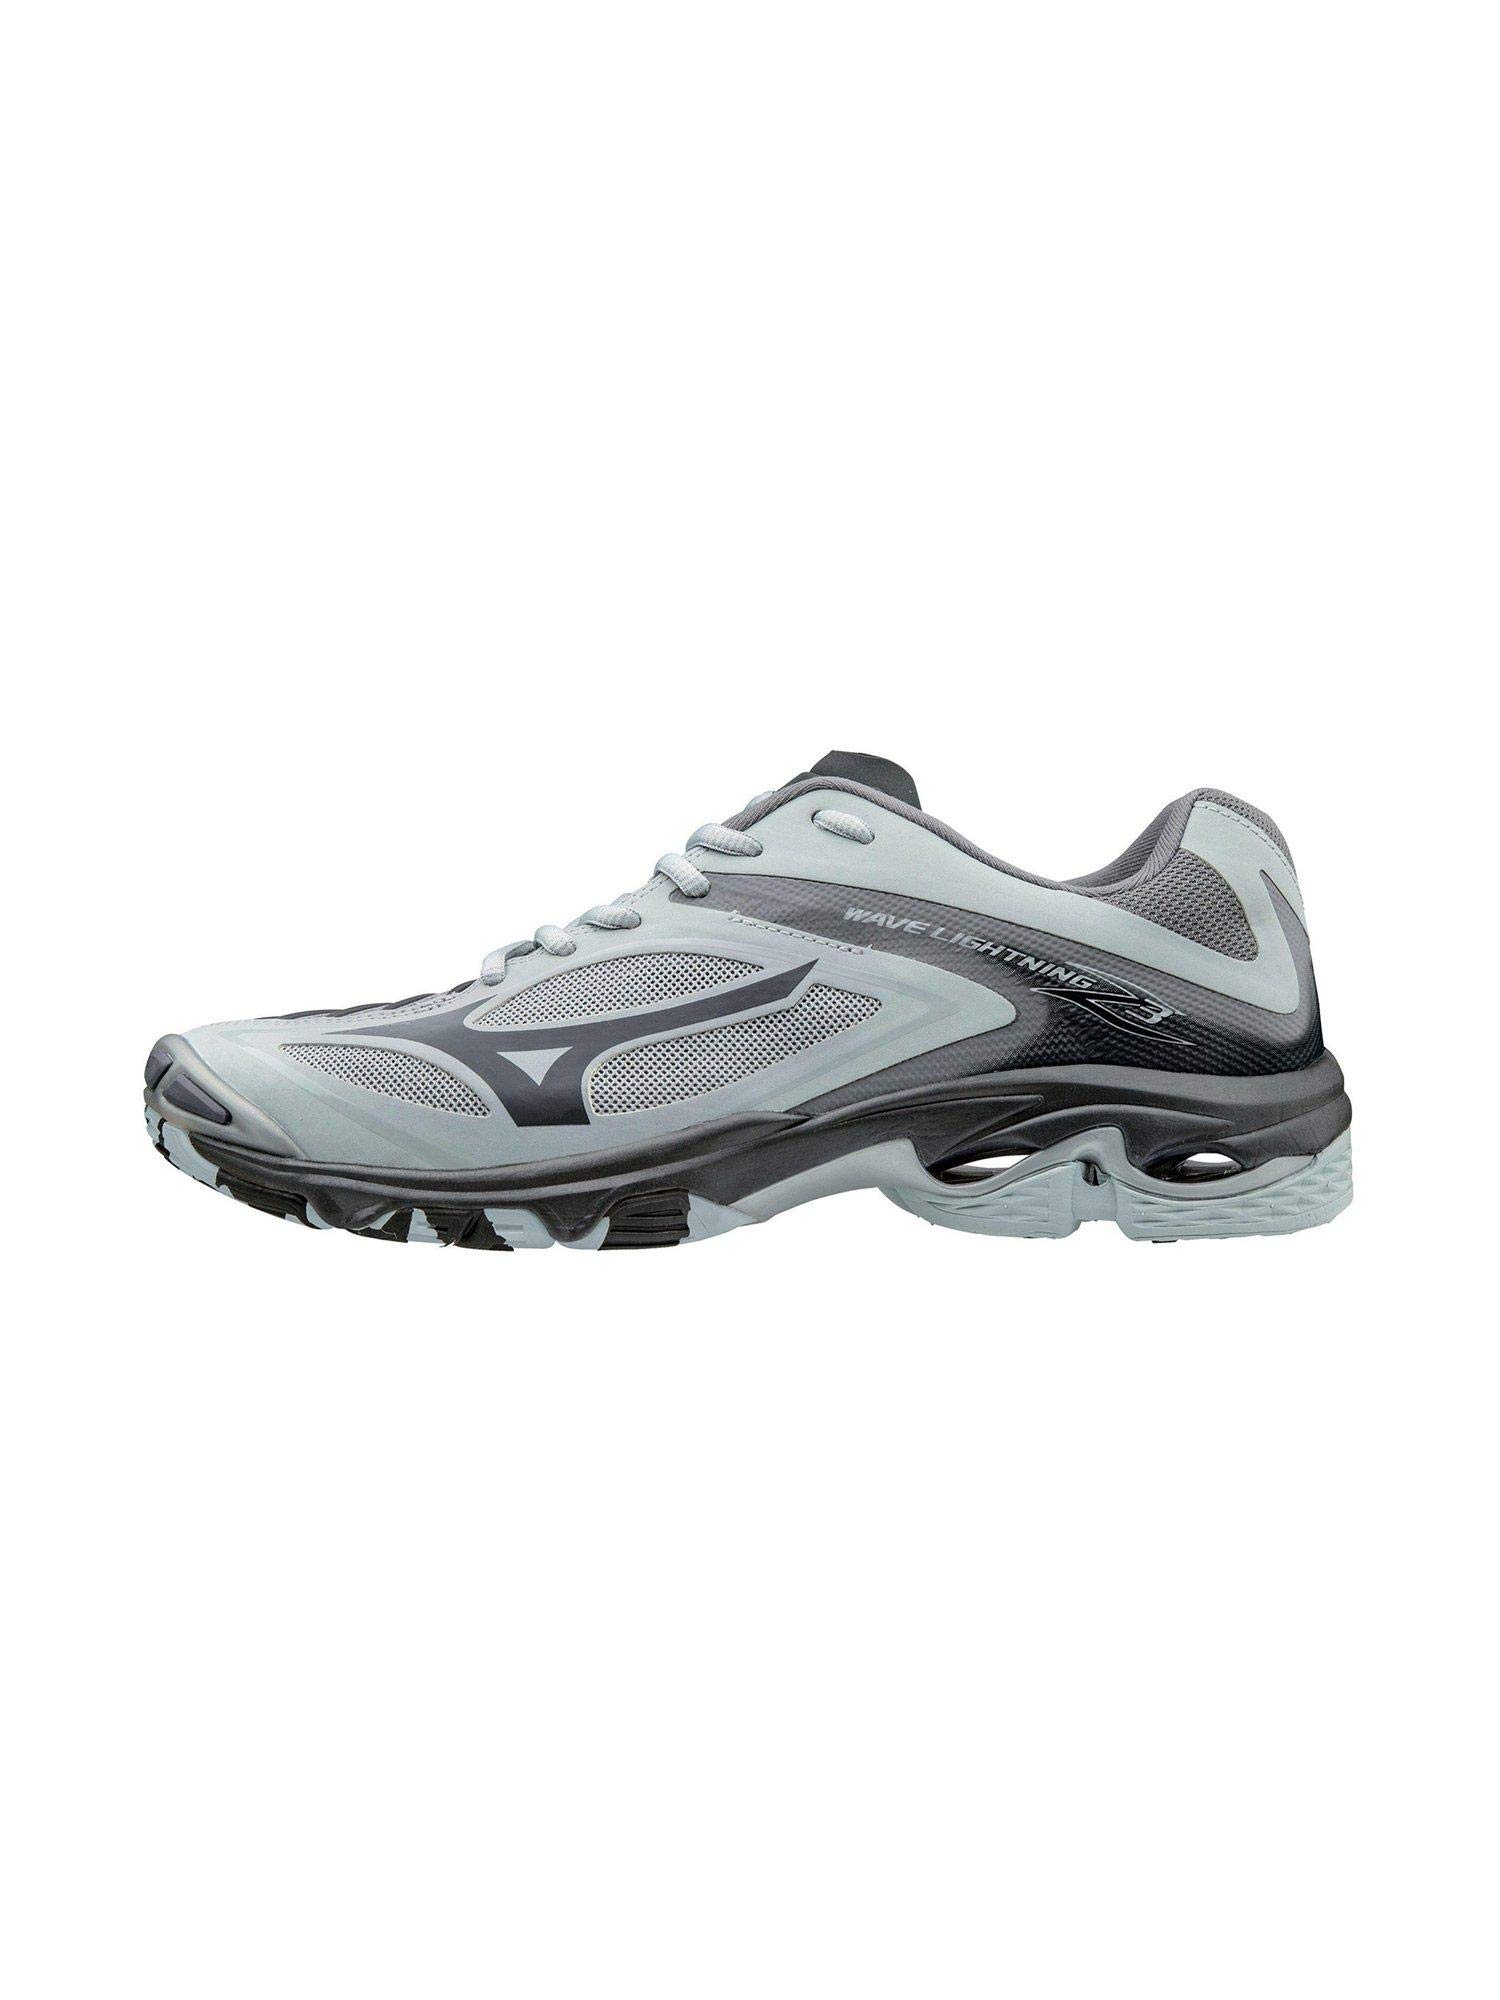 Mizuno Women's Wave Lighting Z3 Volleyball Shoe,Grey,6 B US